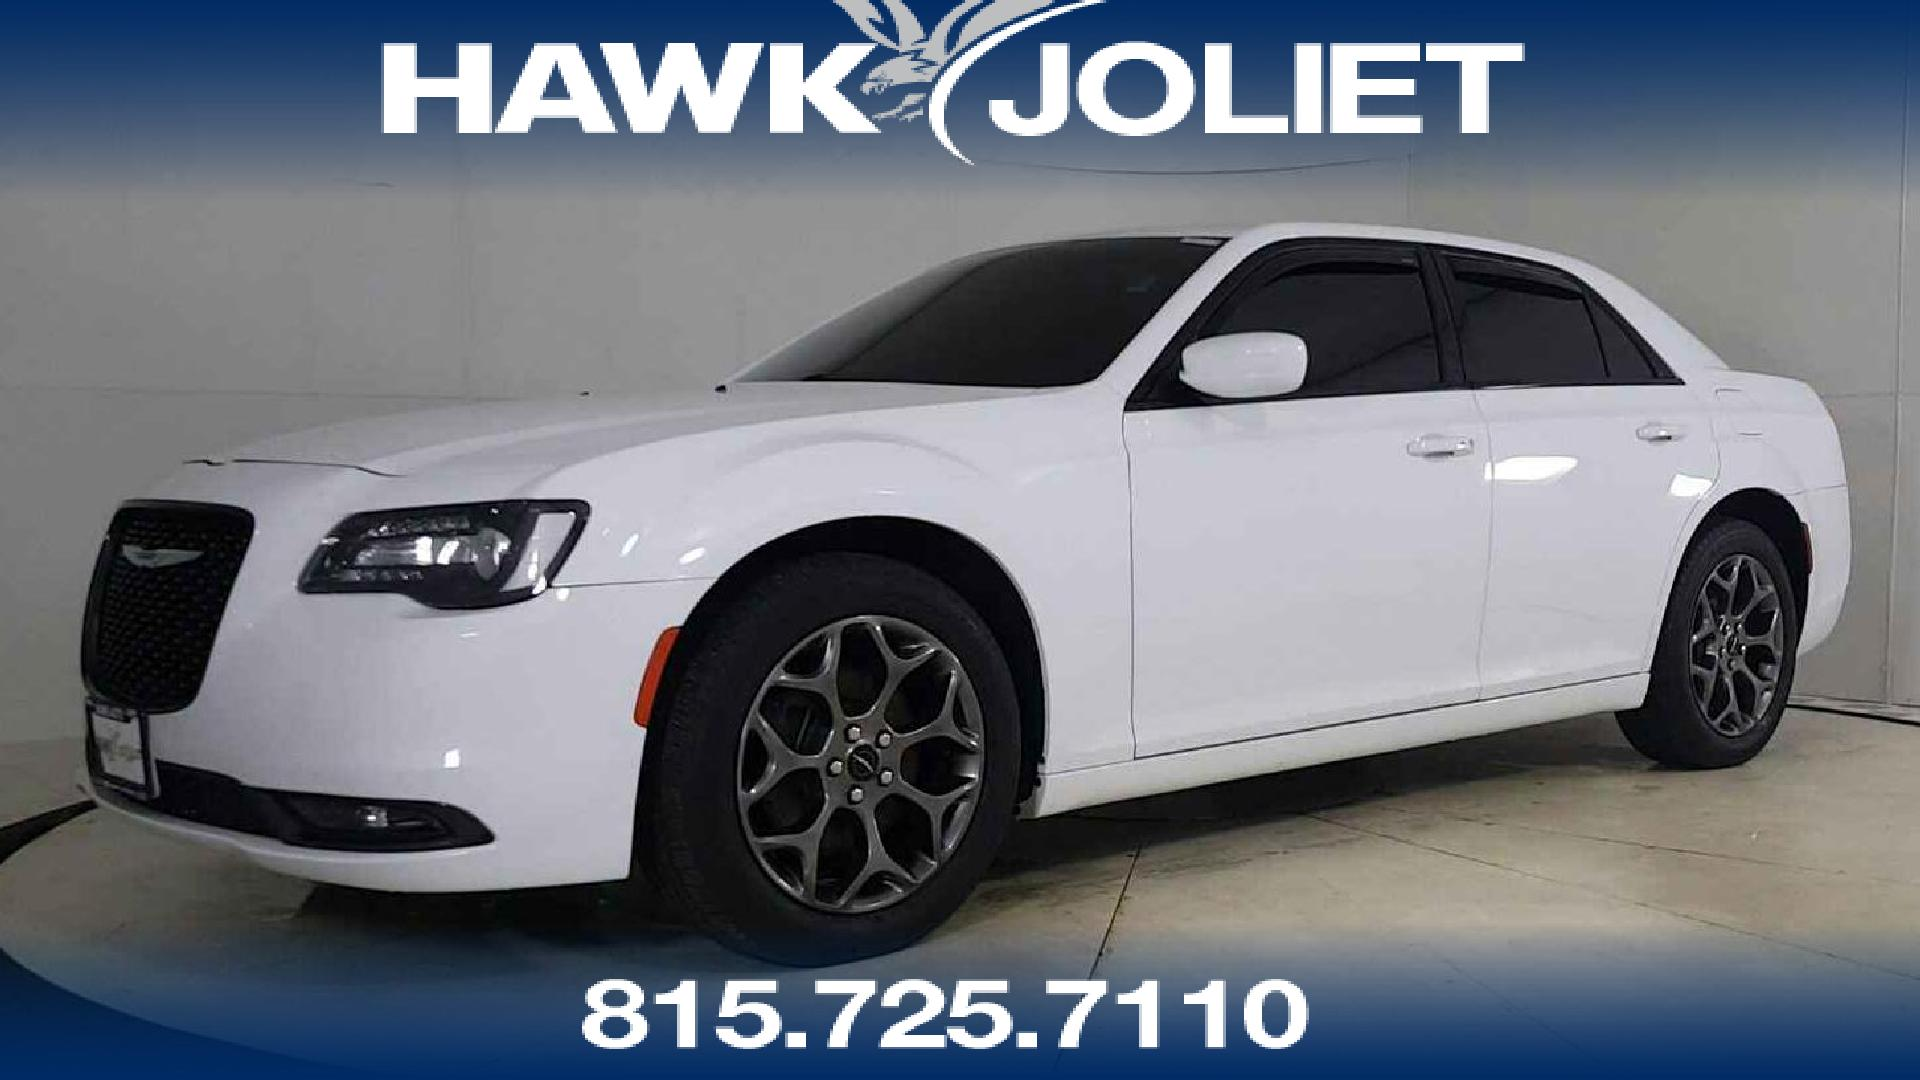 2015 Chrysler 300 for sale in Joliet - 2C3CCAGG9FH927813